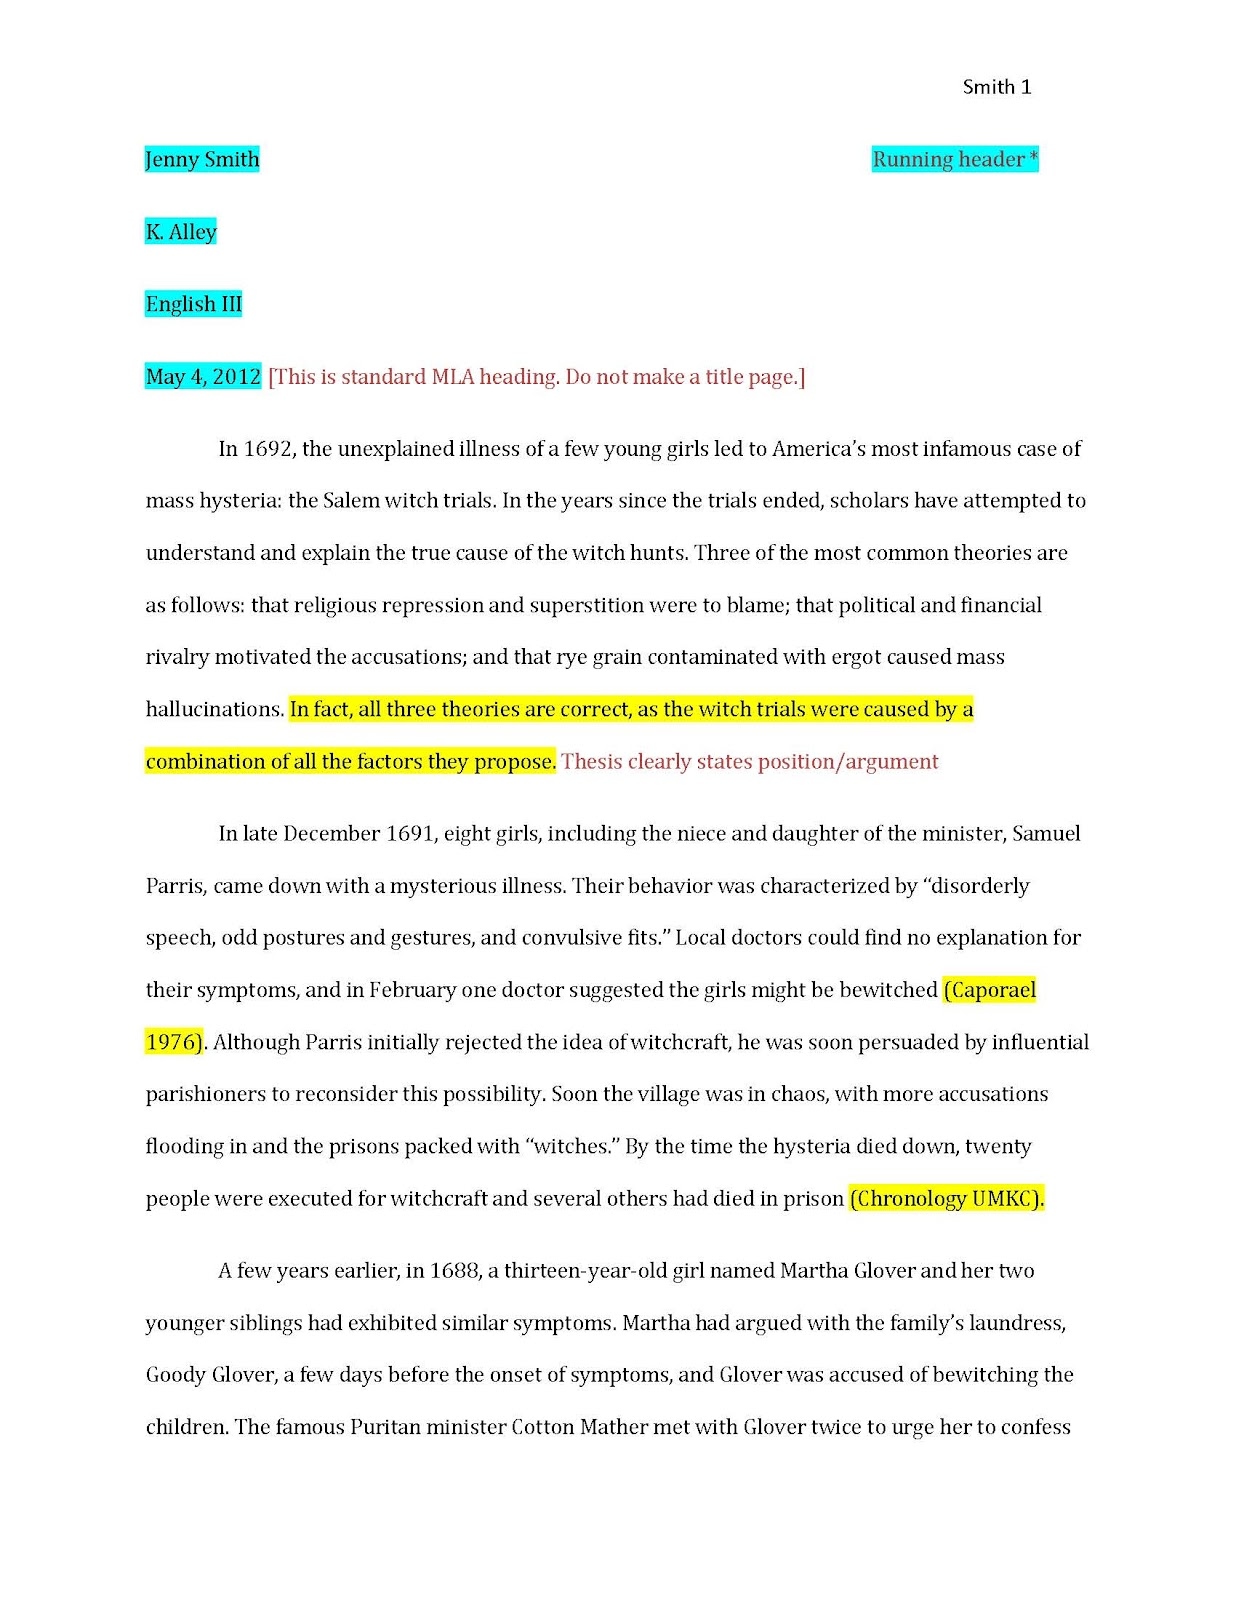 referencing examples in essays examples of excellent cover letters referencing examples in essays sample hbs essays harvard examplepaper page 1 referencing examples in essayshtml